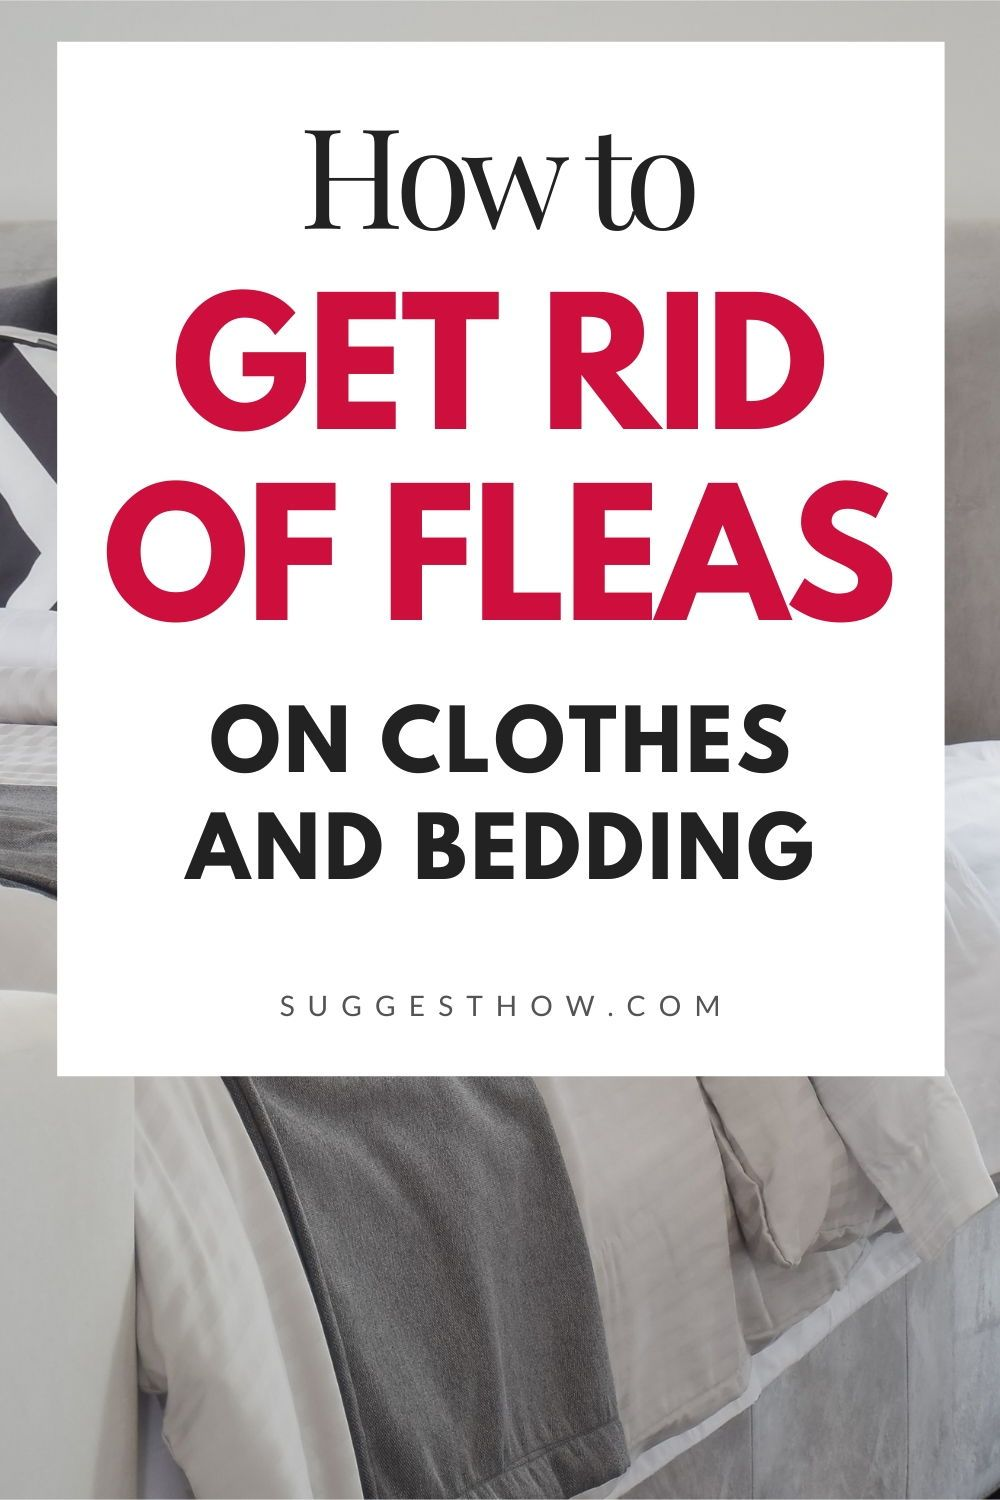 How To Get Rid Of Fleas On Clothes And Bedding In 2020 How To Get Rid Fleas How To Get